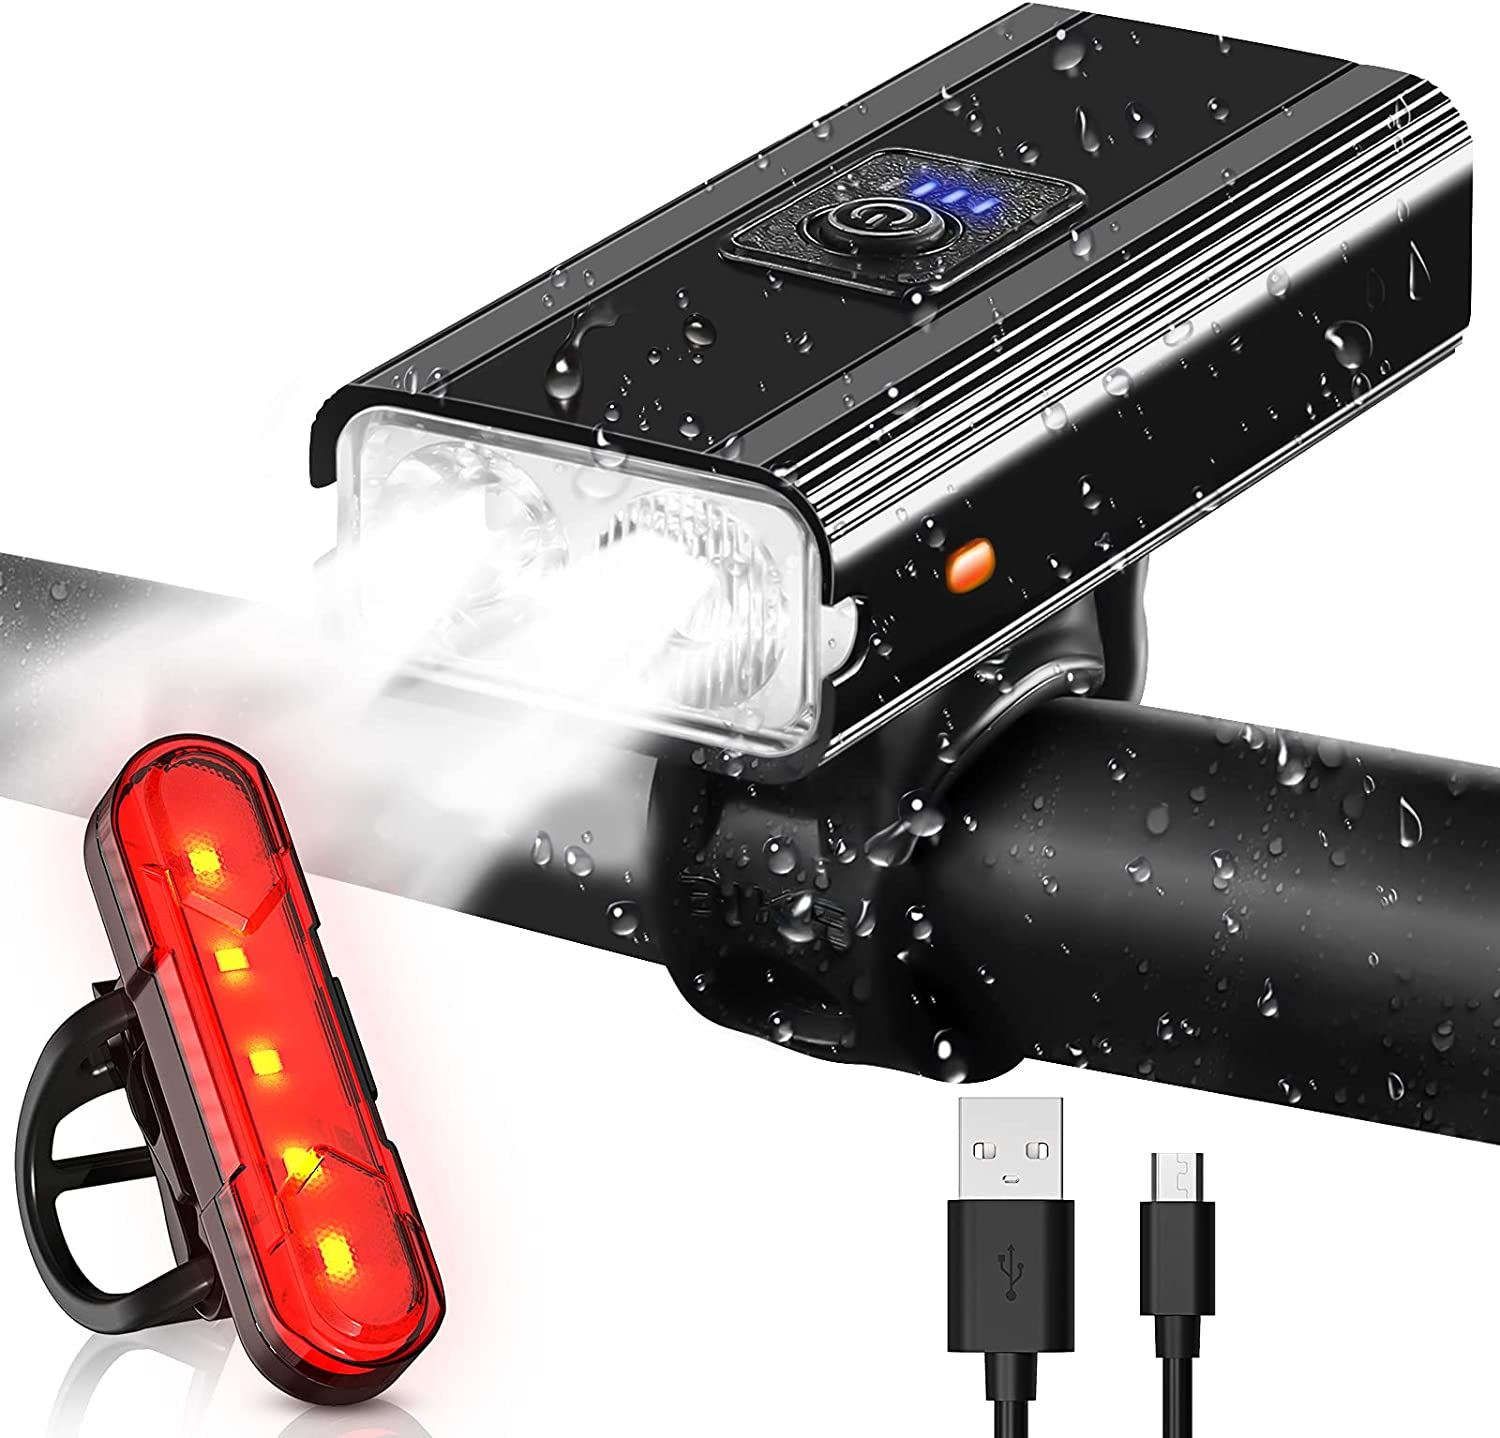 Bike online shopping Lights USB Rechargeable Super and Bright Super sale period limited Re Front Back